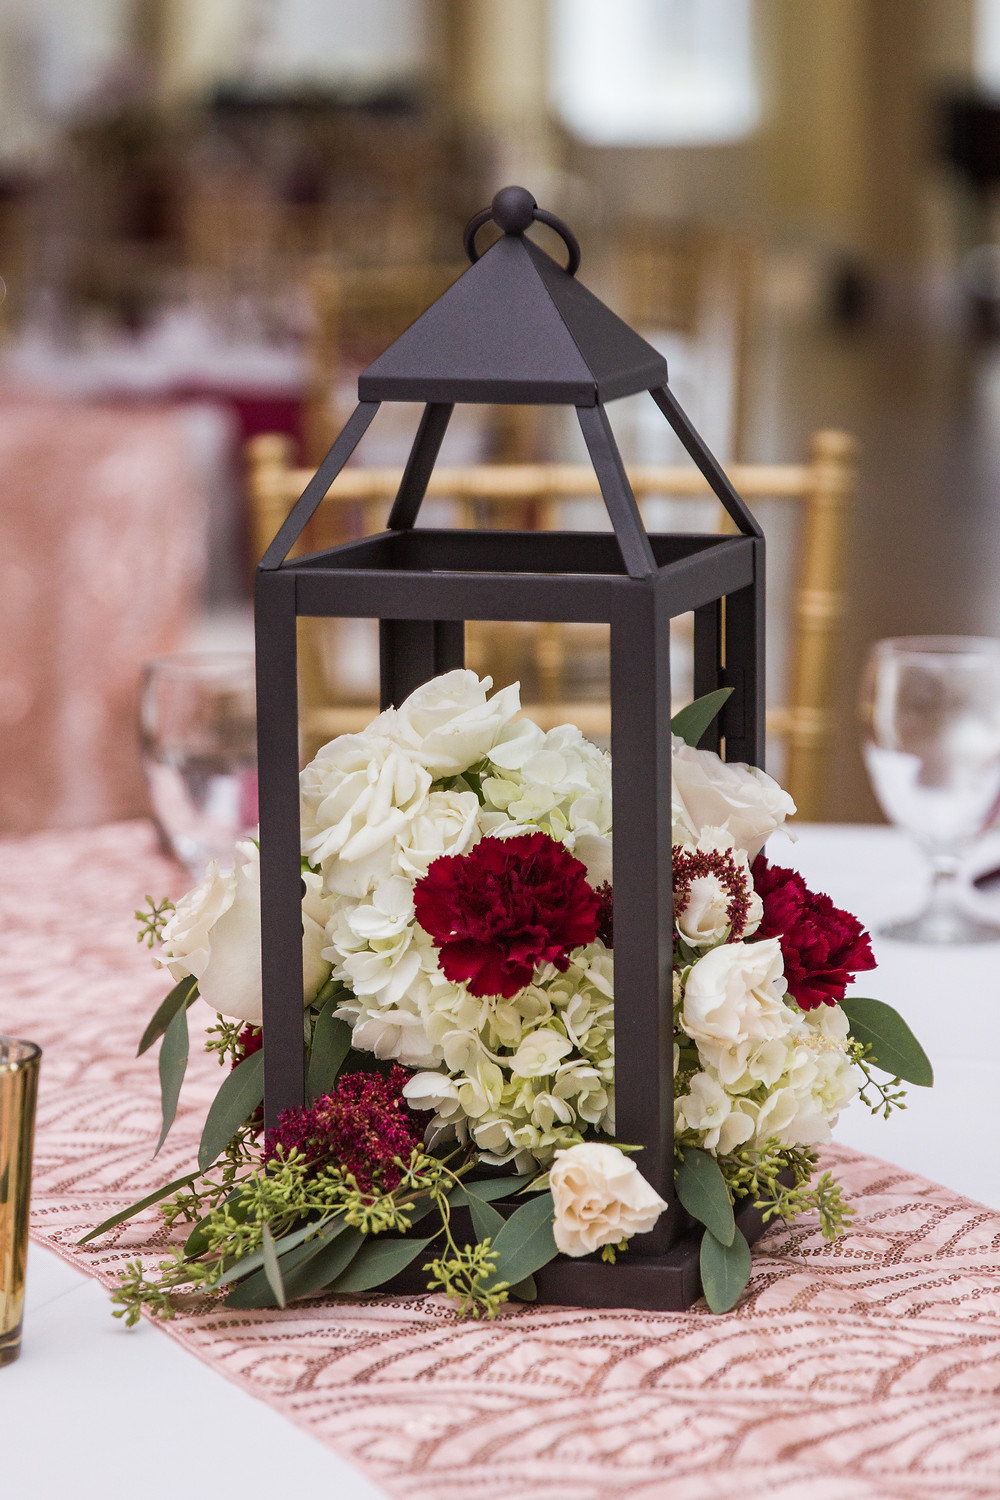 wedding, reception, tablescape, lantern, floral arrangements, burgundy, white, light pink, seeded eucalyptus, wedding day, columbia, mo, blue diamond events photography, fall colors, Kimball Ballroom, Stephens College, fall decor, blue diamond events coordinating, day of coordinating